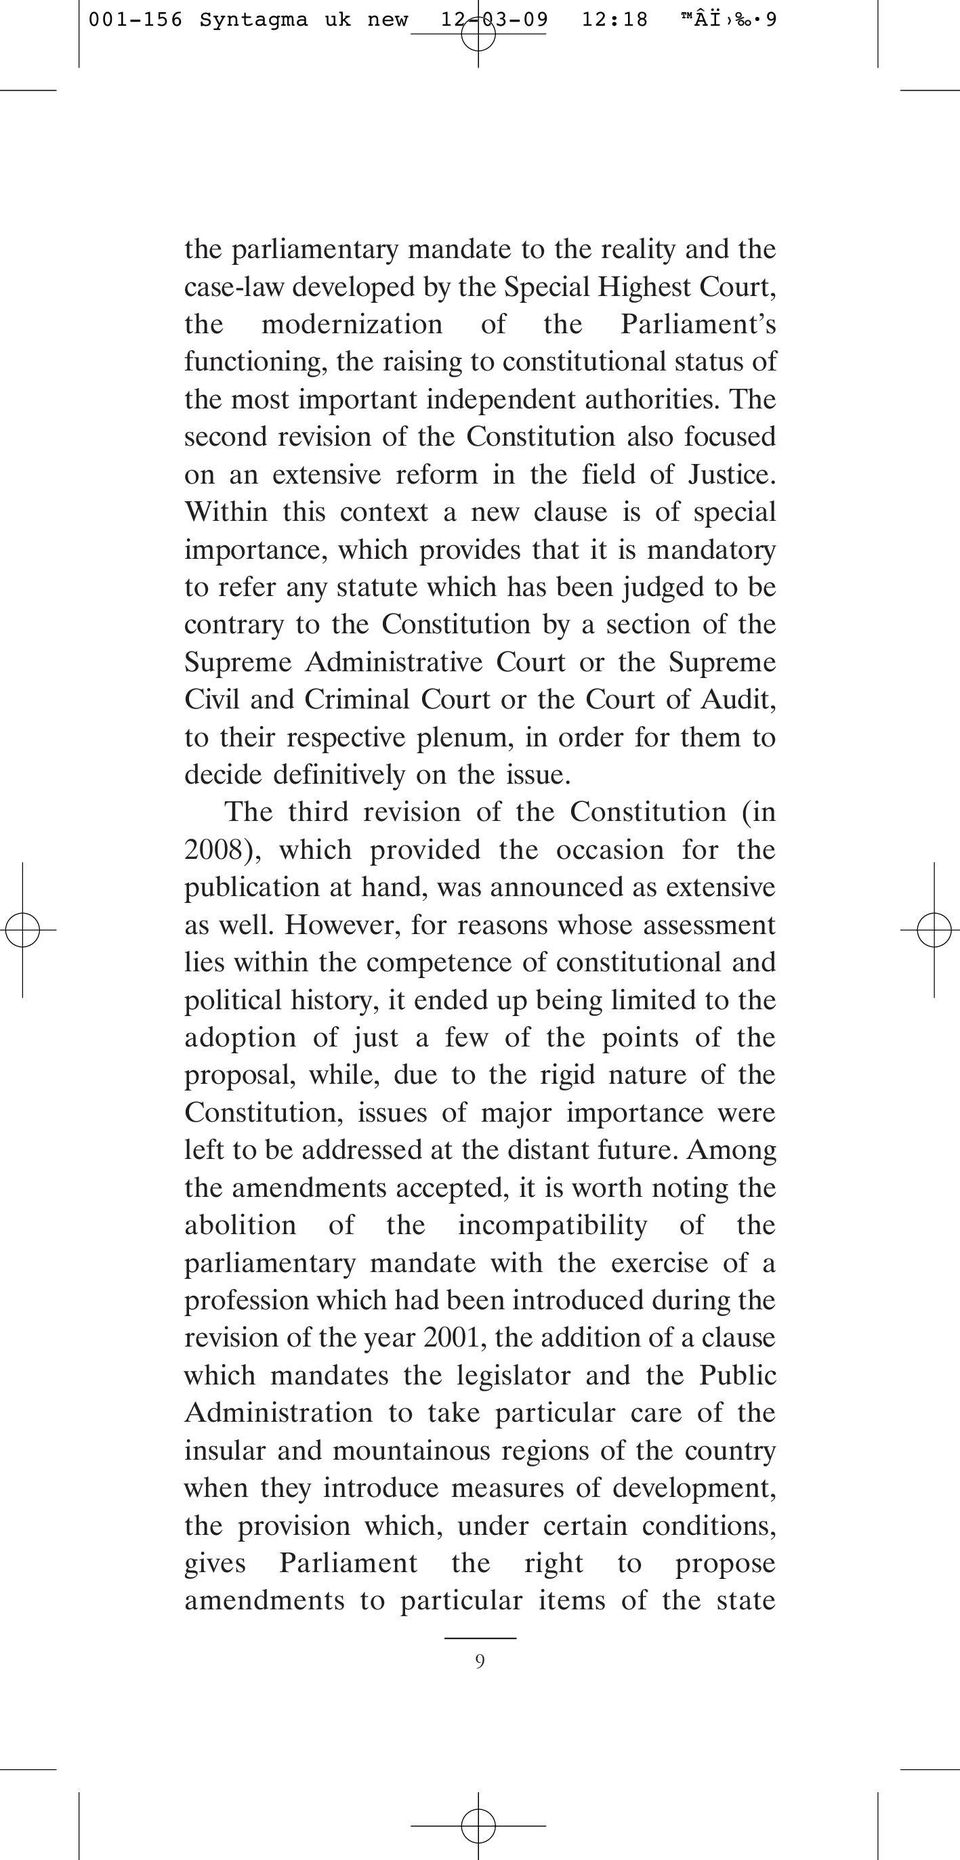 Within this context a new clause is of special importance, which provides that it is mandatory to refer any statute which has been judged to be contrary to the Constitution by a section of the